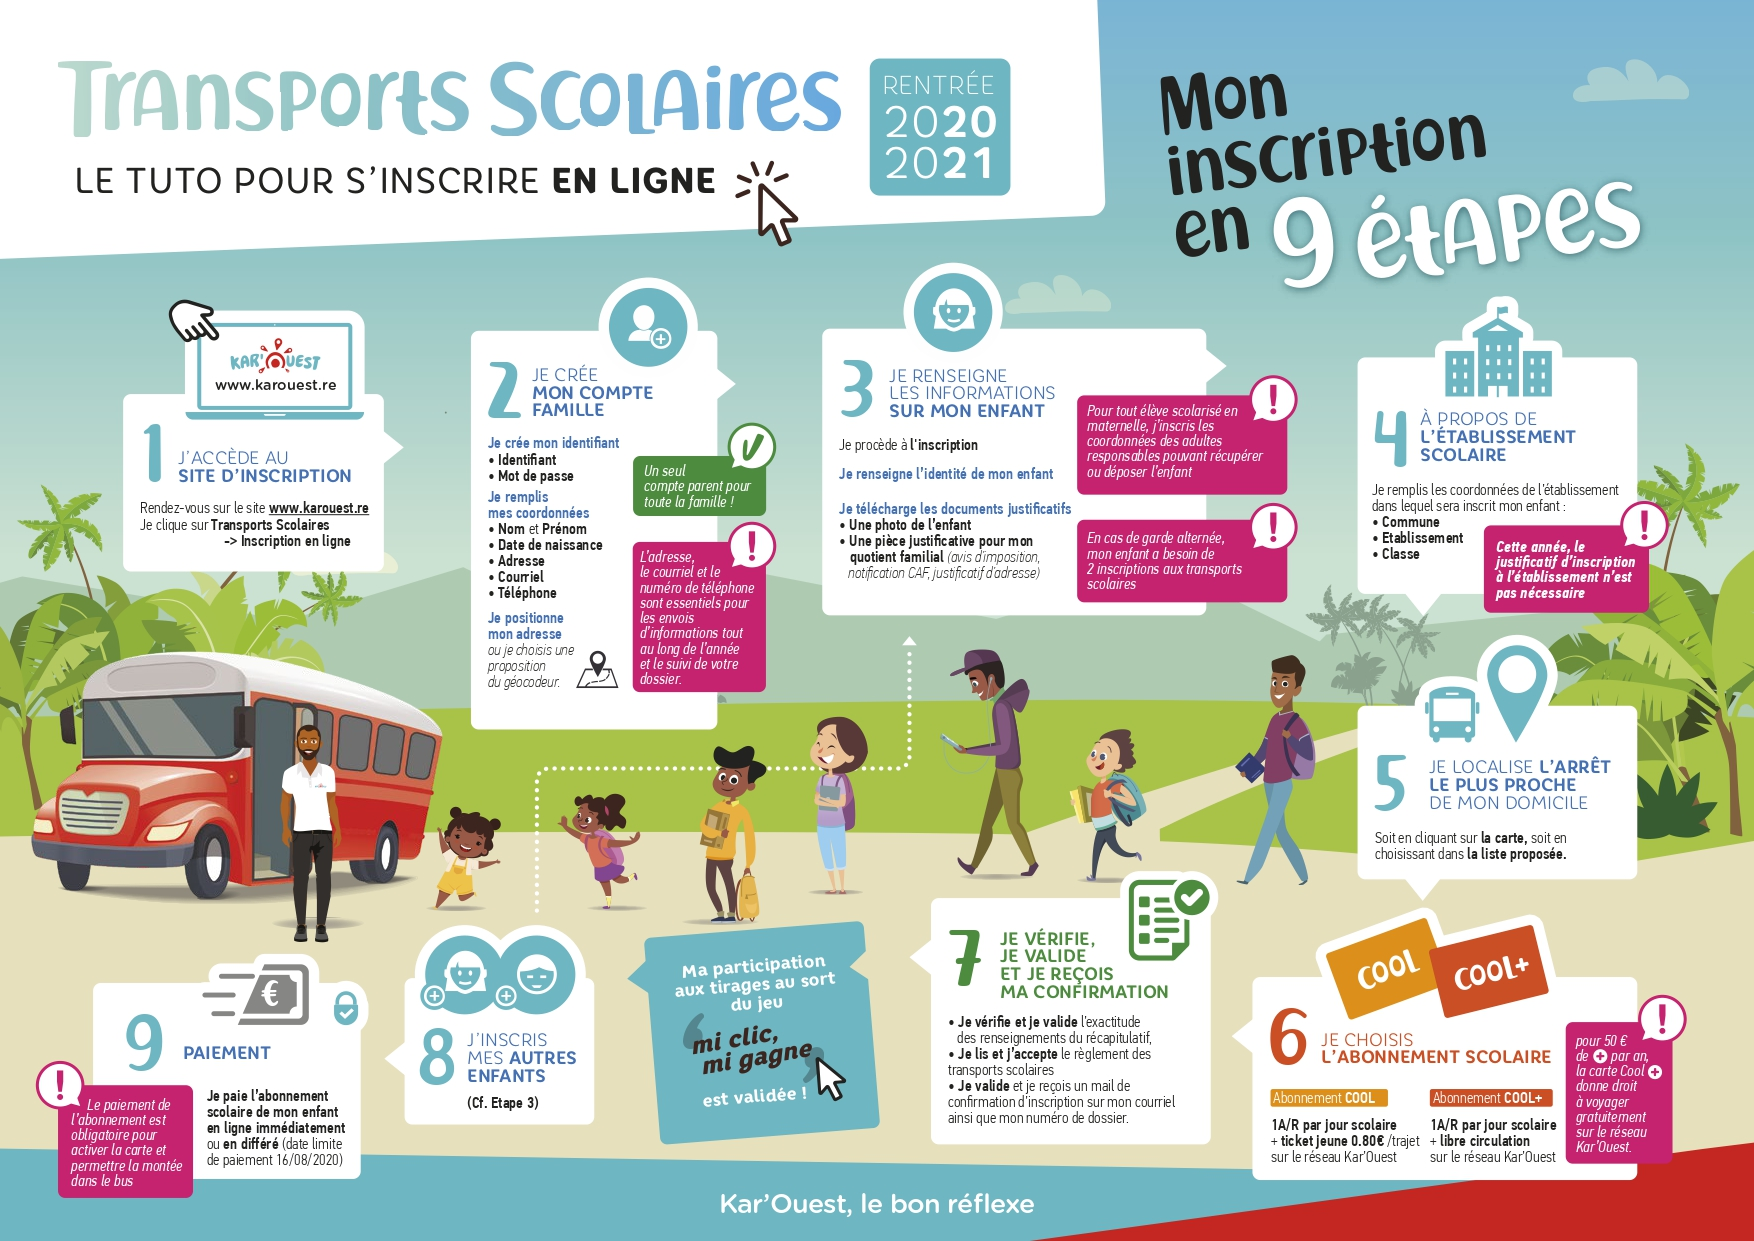 inscription-transport-scolaire-karouest-v4-page-0002-copie.jpg